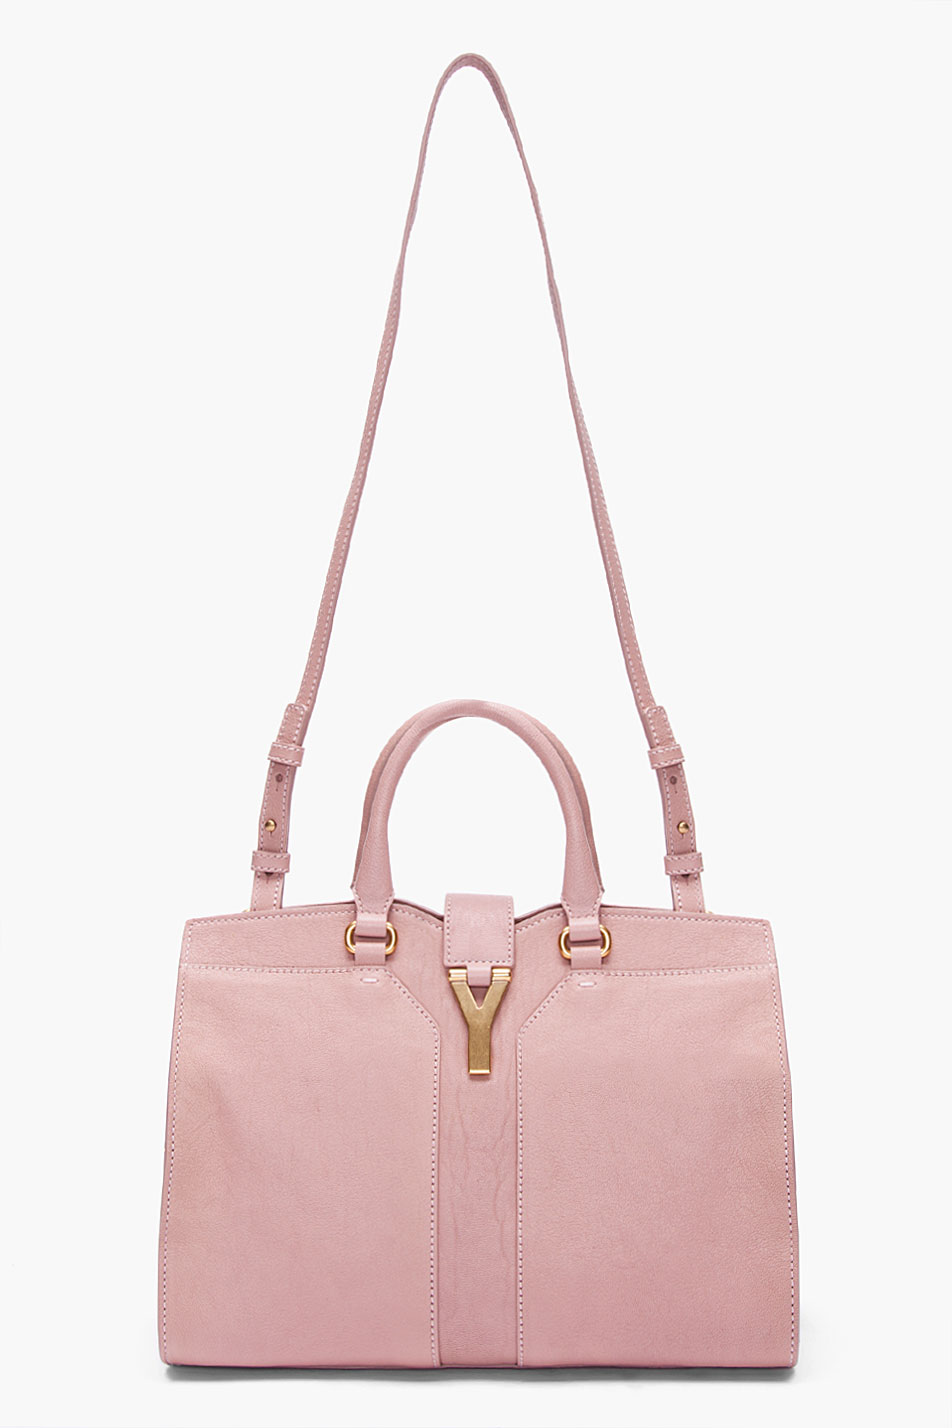 Saint laurent Mini Pastel Pink Cabas Chyc Bag in Pink | Lyst